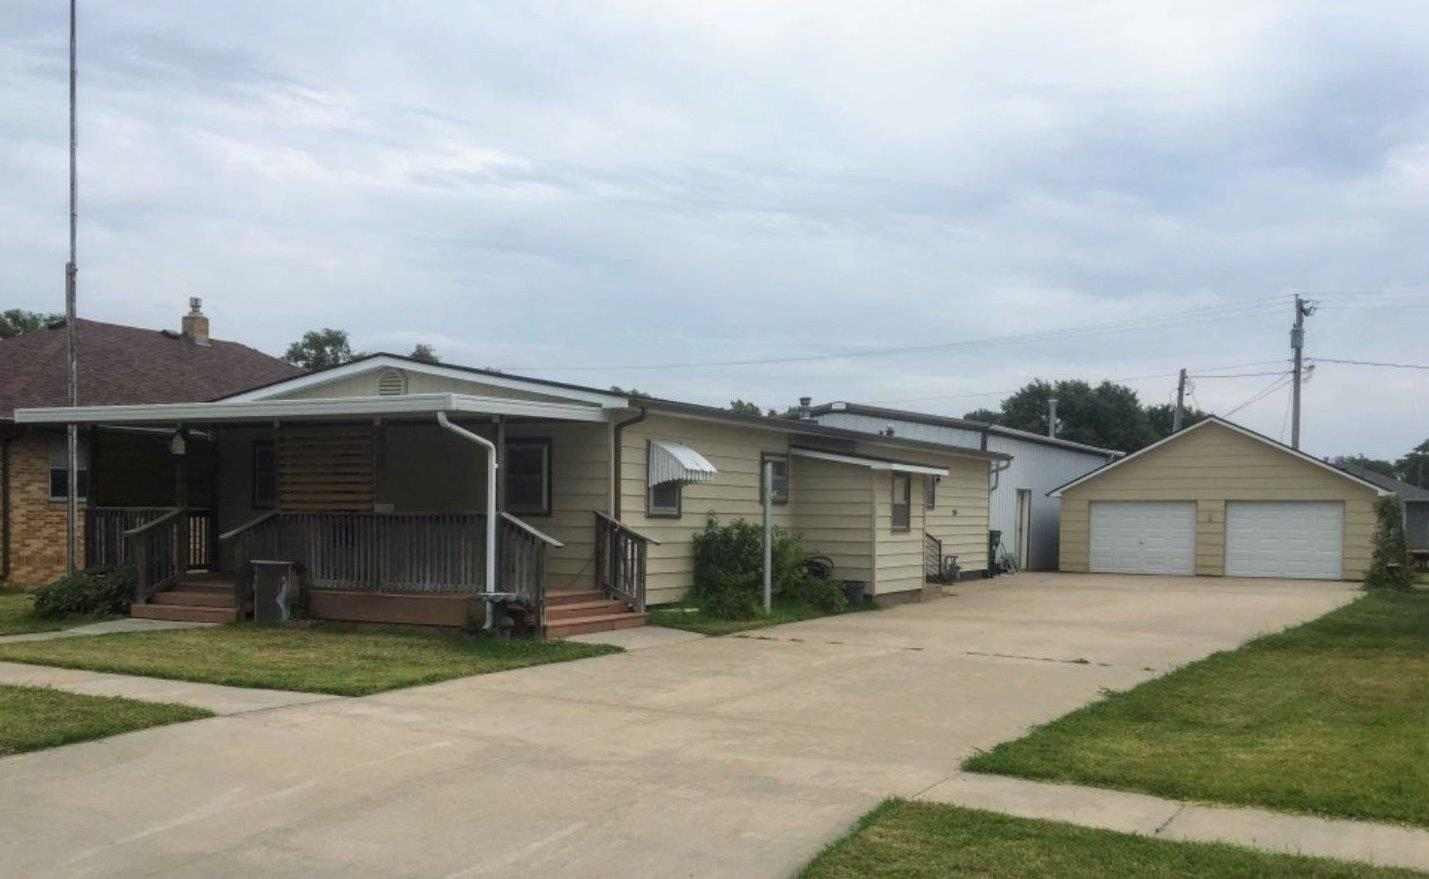 Exclusively Listed! Best of both country and city living with this well kept 3 bedroom 2.5 bath manufactured home. Man cave for him with attached mechanic shop & a double detached garage for her not to forget the jet-sit-in bath!